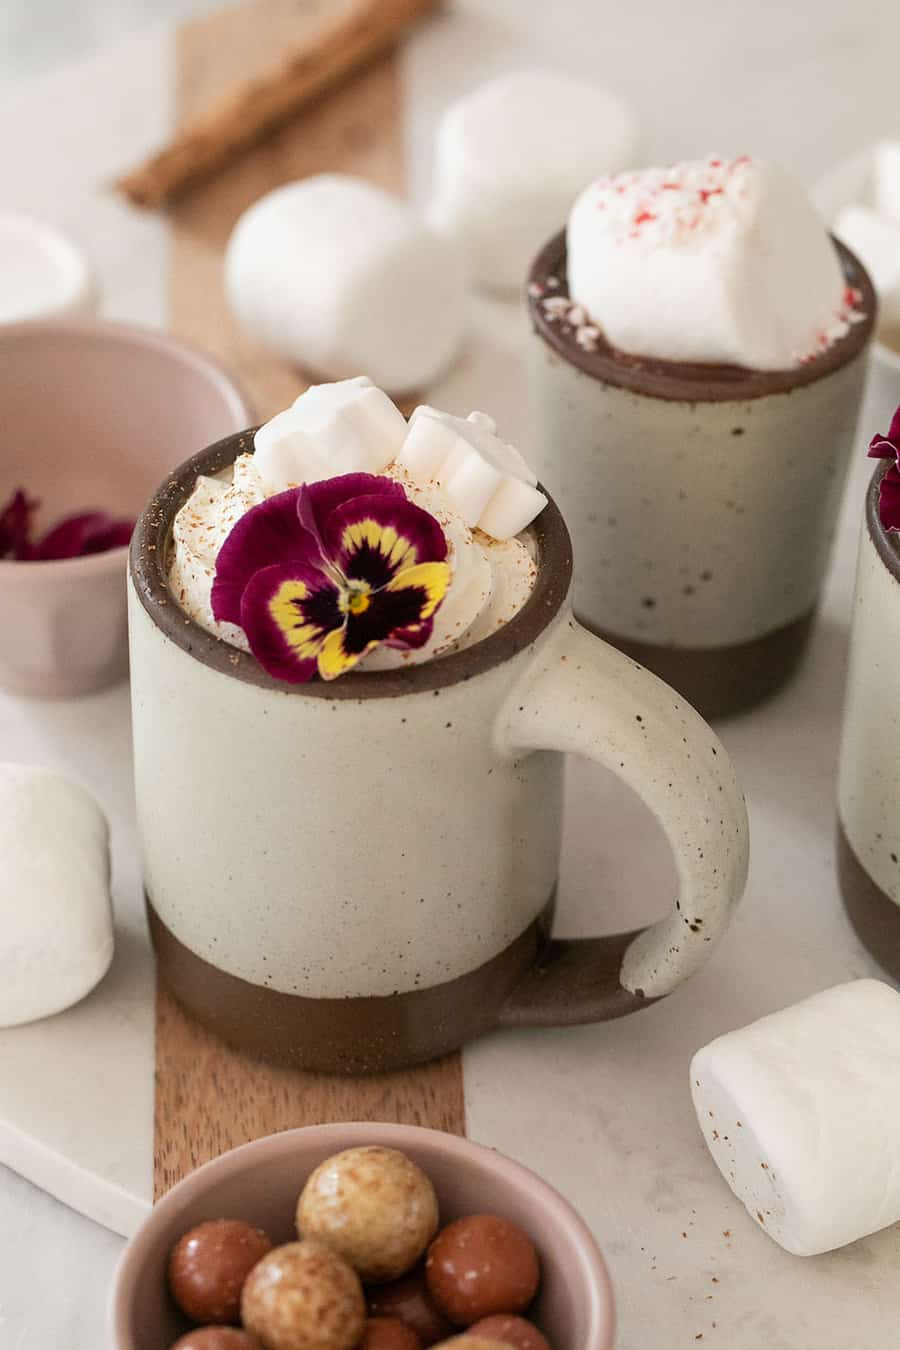 Mug filled with hot chocolate topped with whipped cream, a marshmallow and an edible flower.